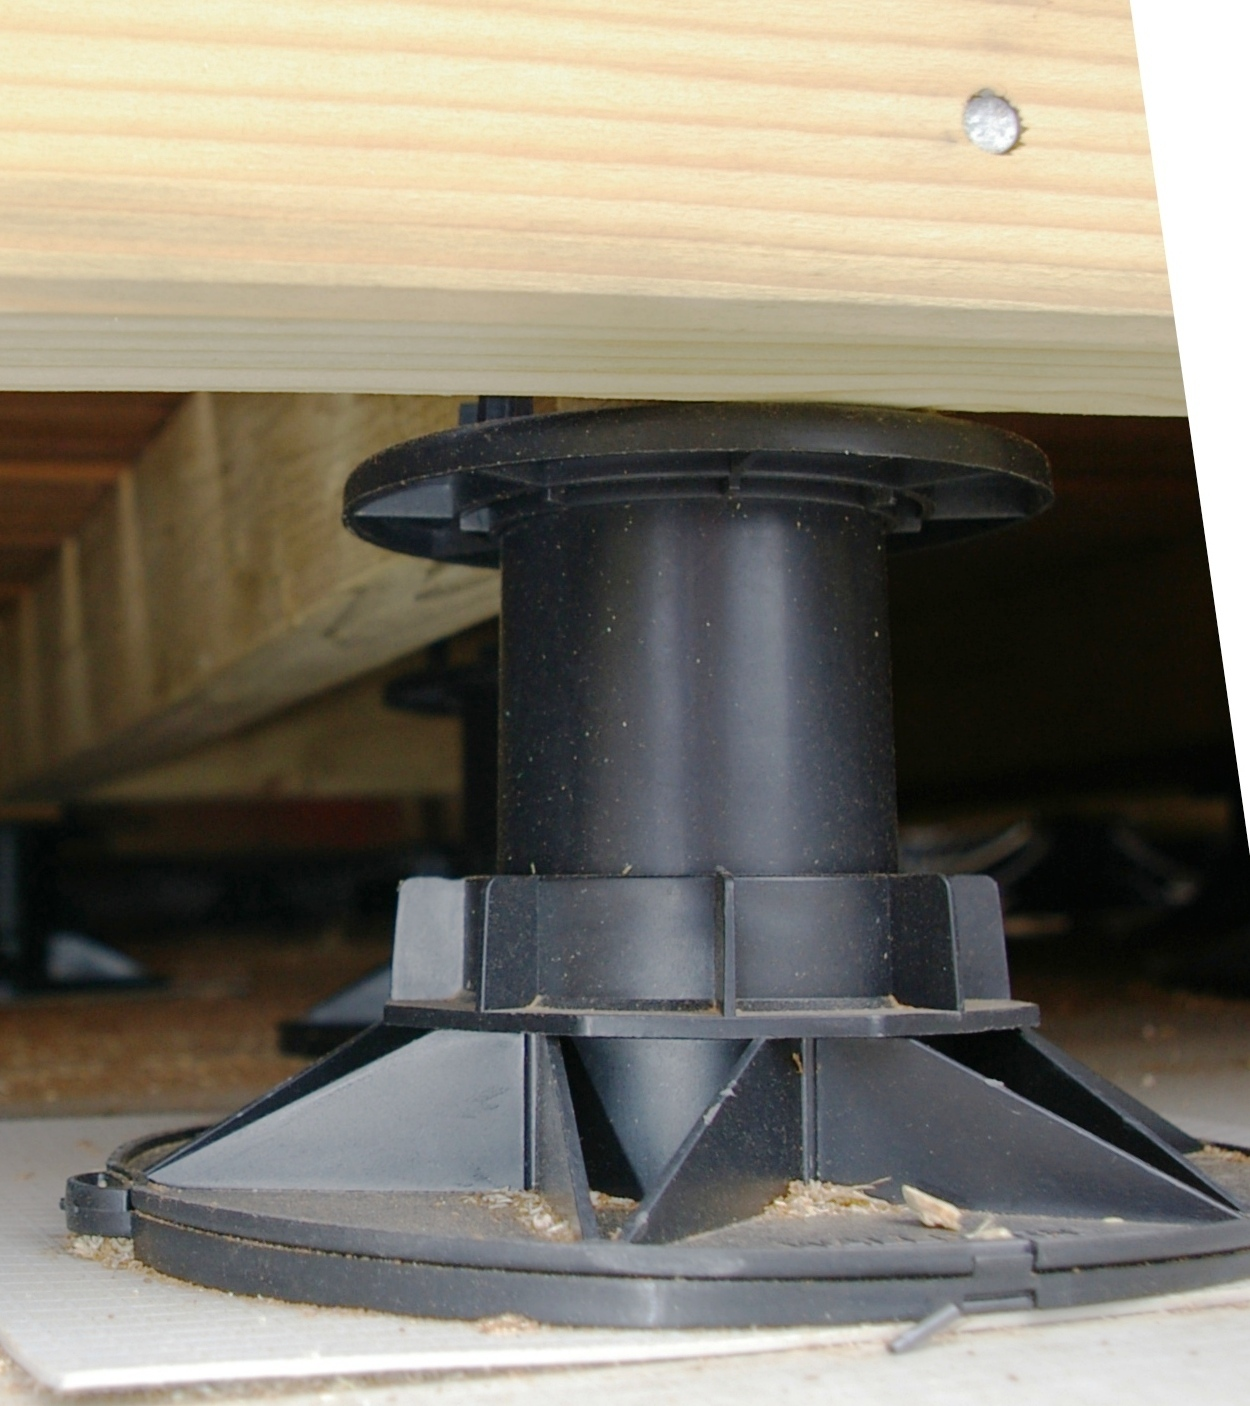 Universal adjustable decking support pad with joist